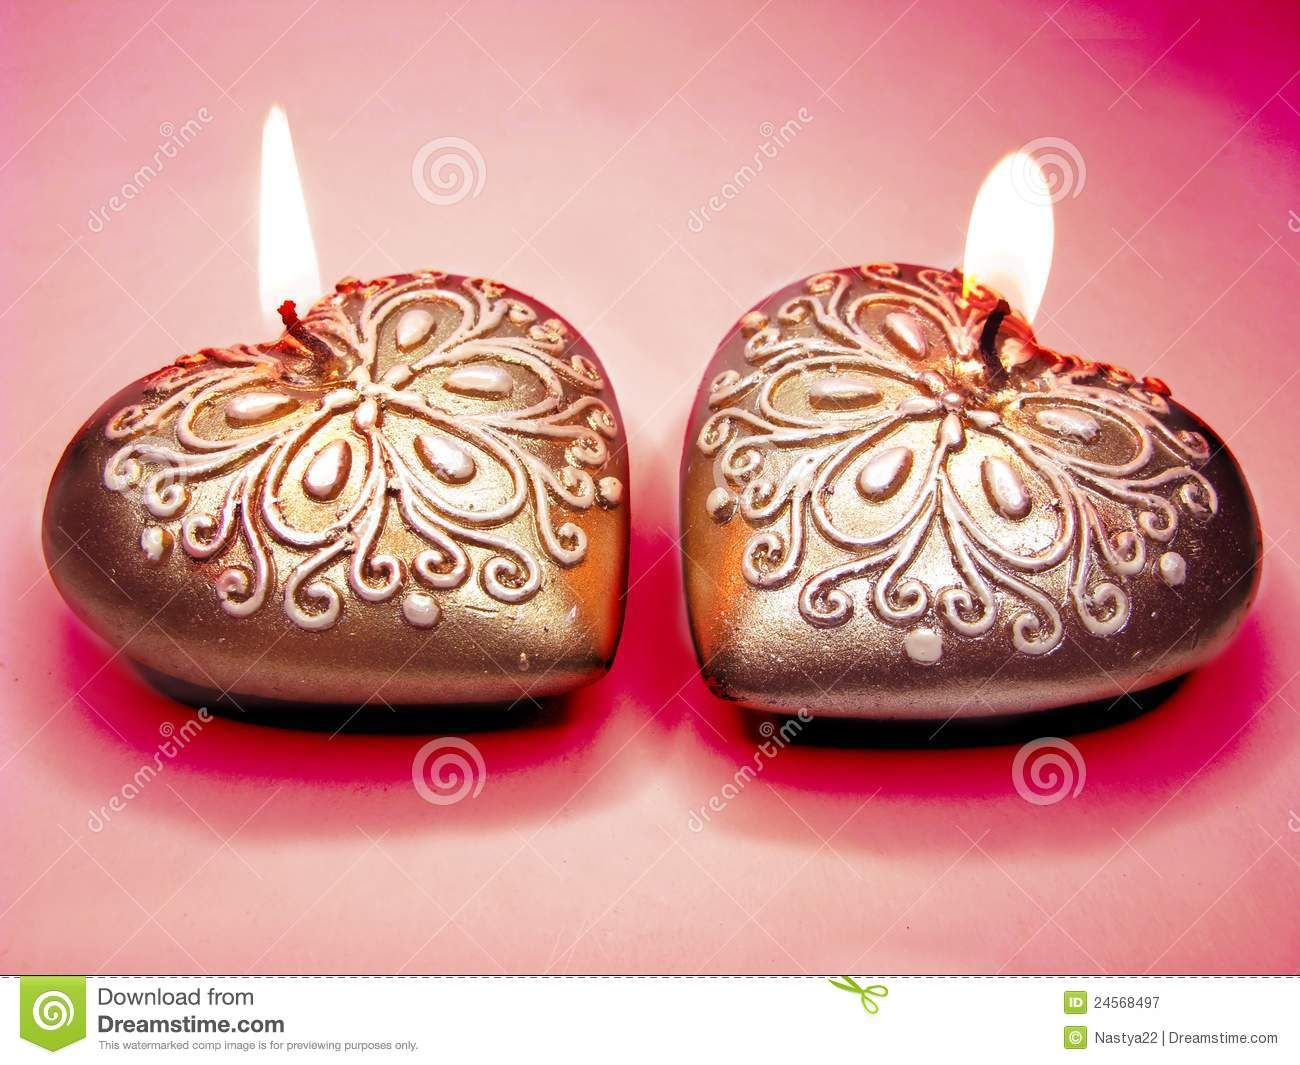 Heart scented aroma candles set